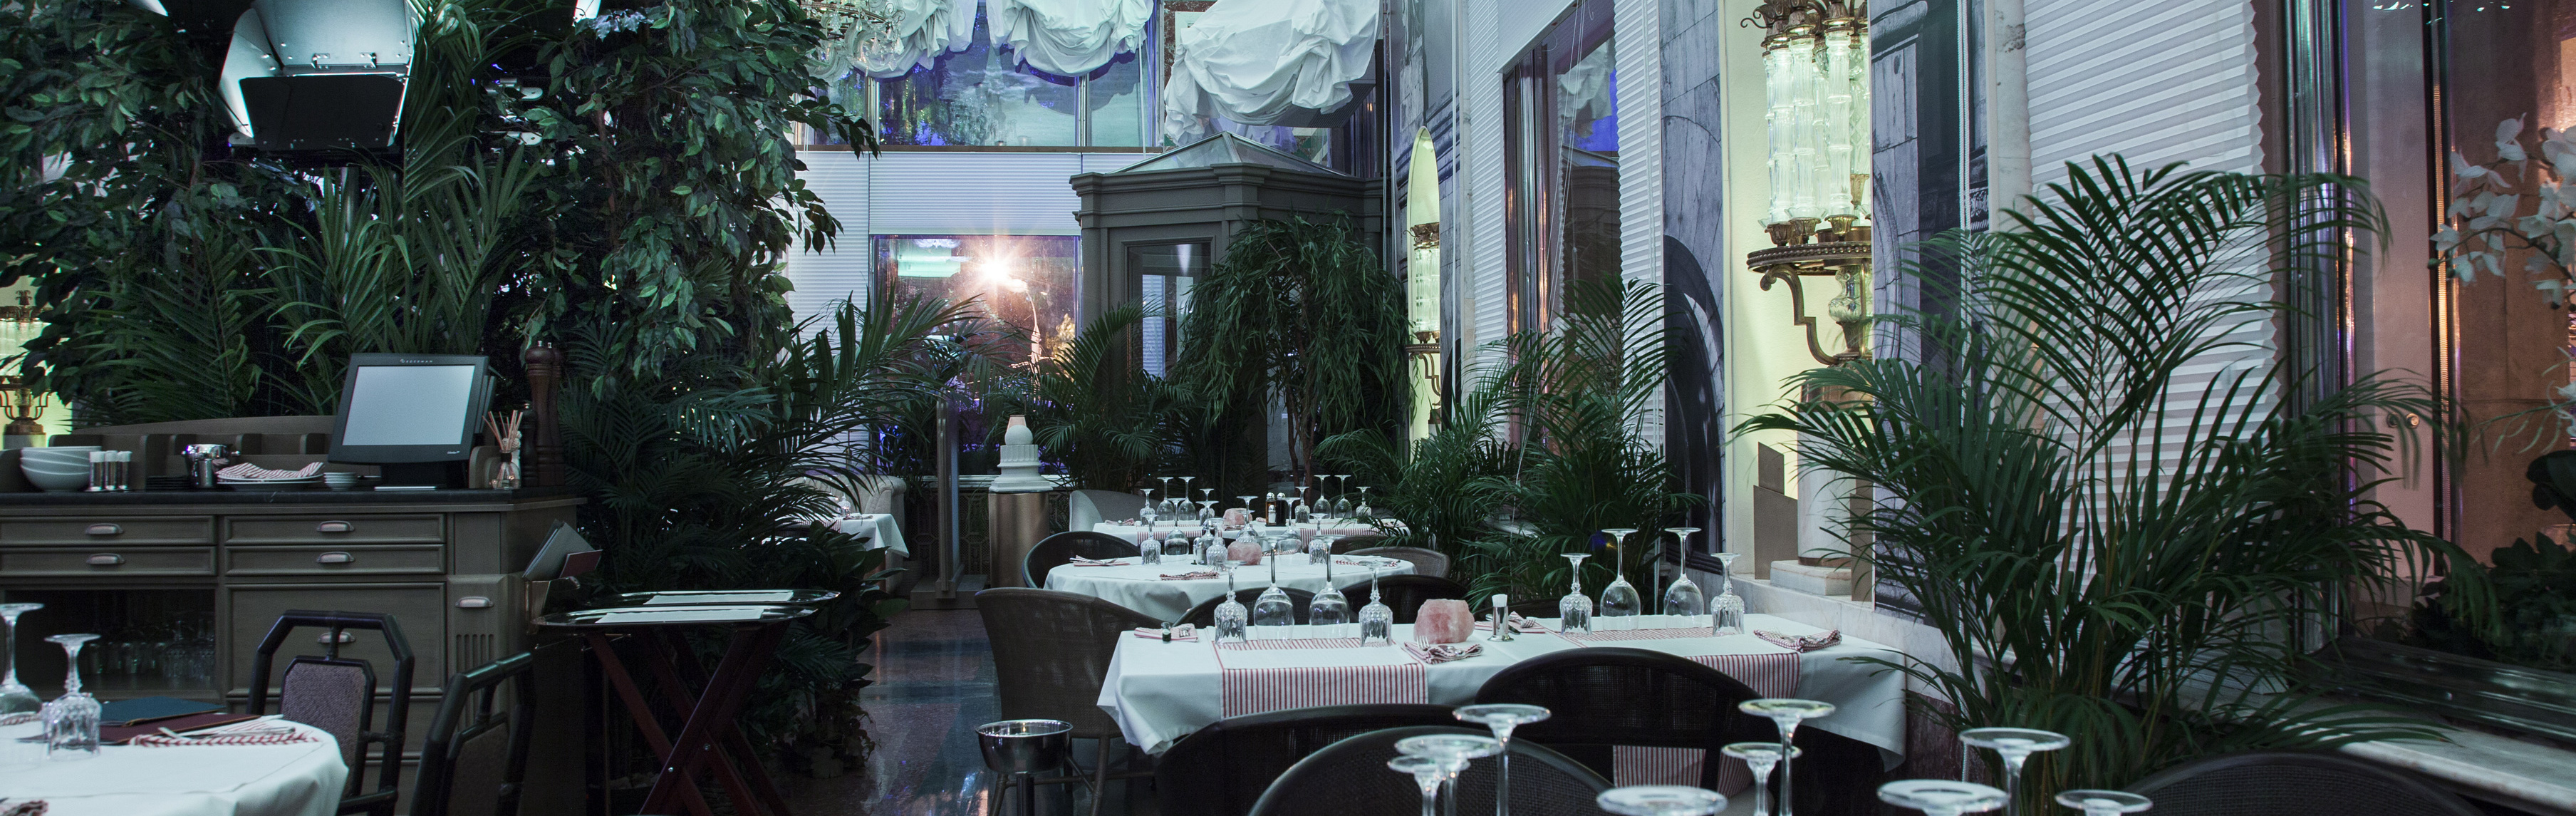 Restaurant Balzi Rossi in Moscow: features of the institution and menu